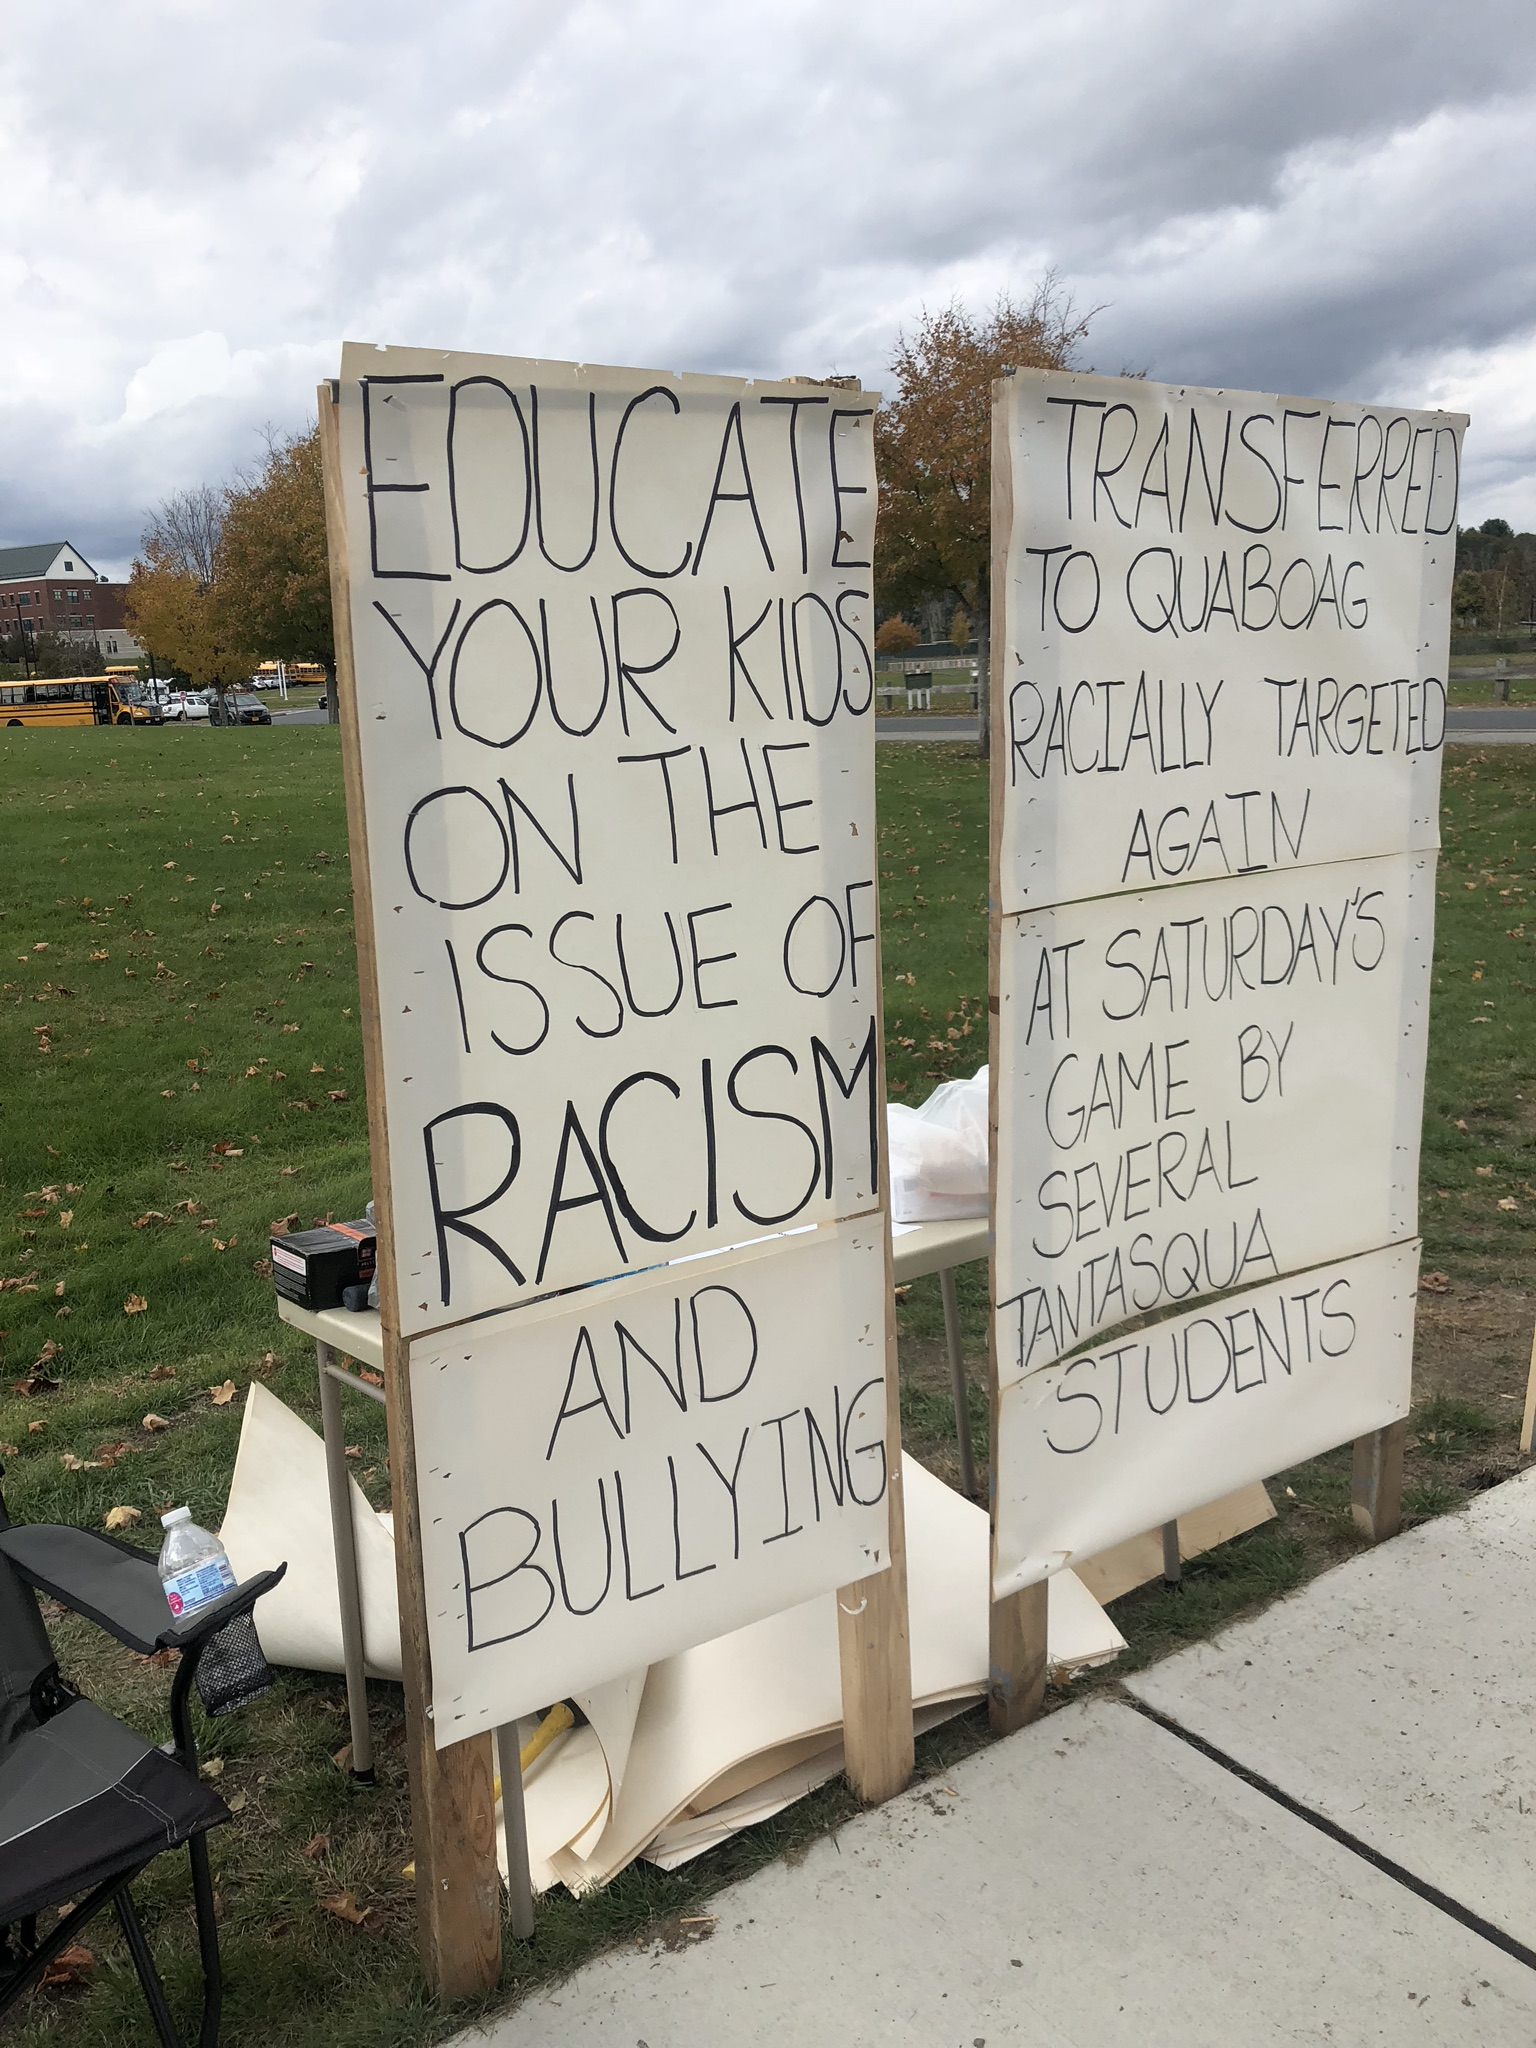 Father Protests Alleged Racism at Tantasqua